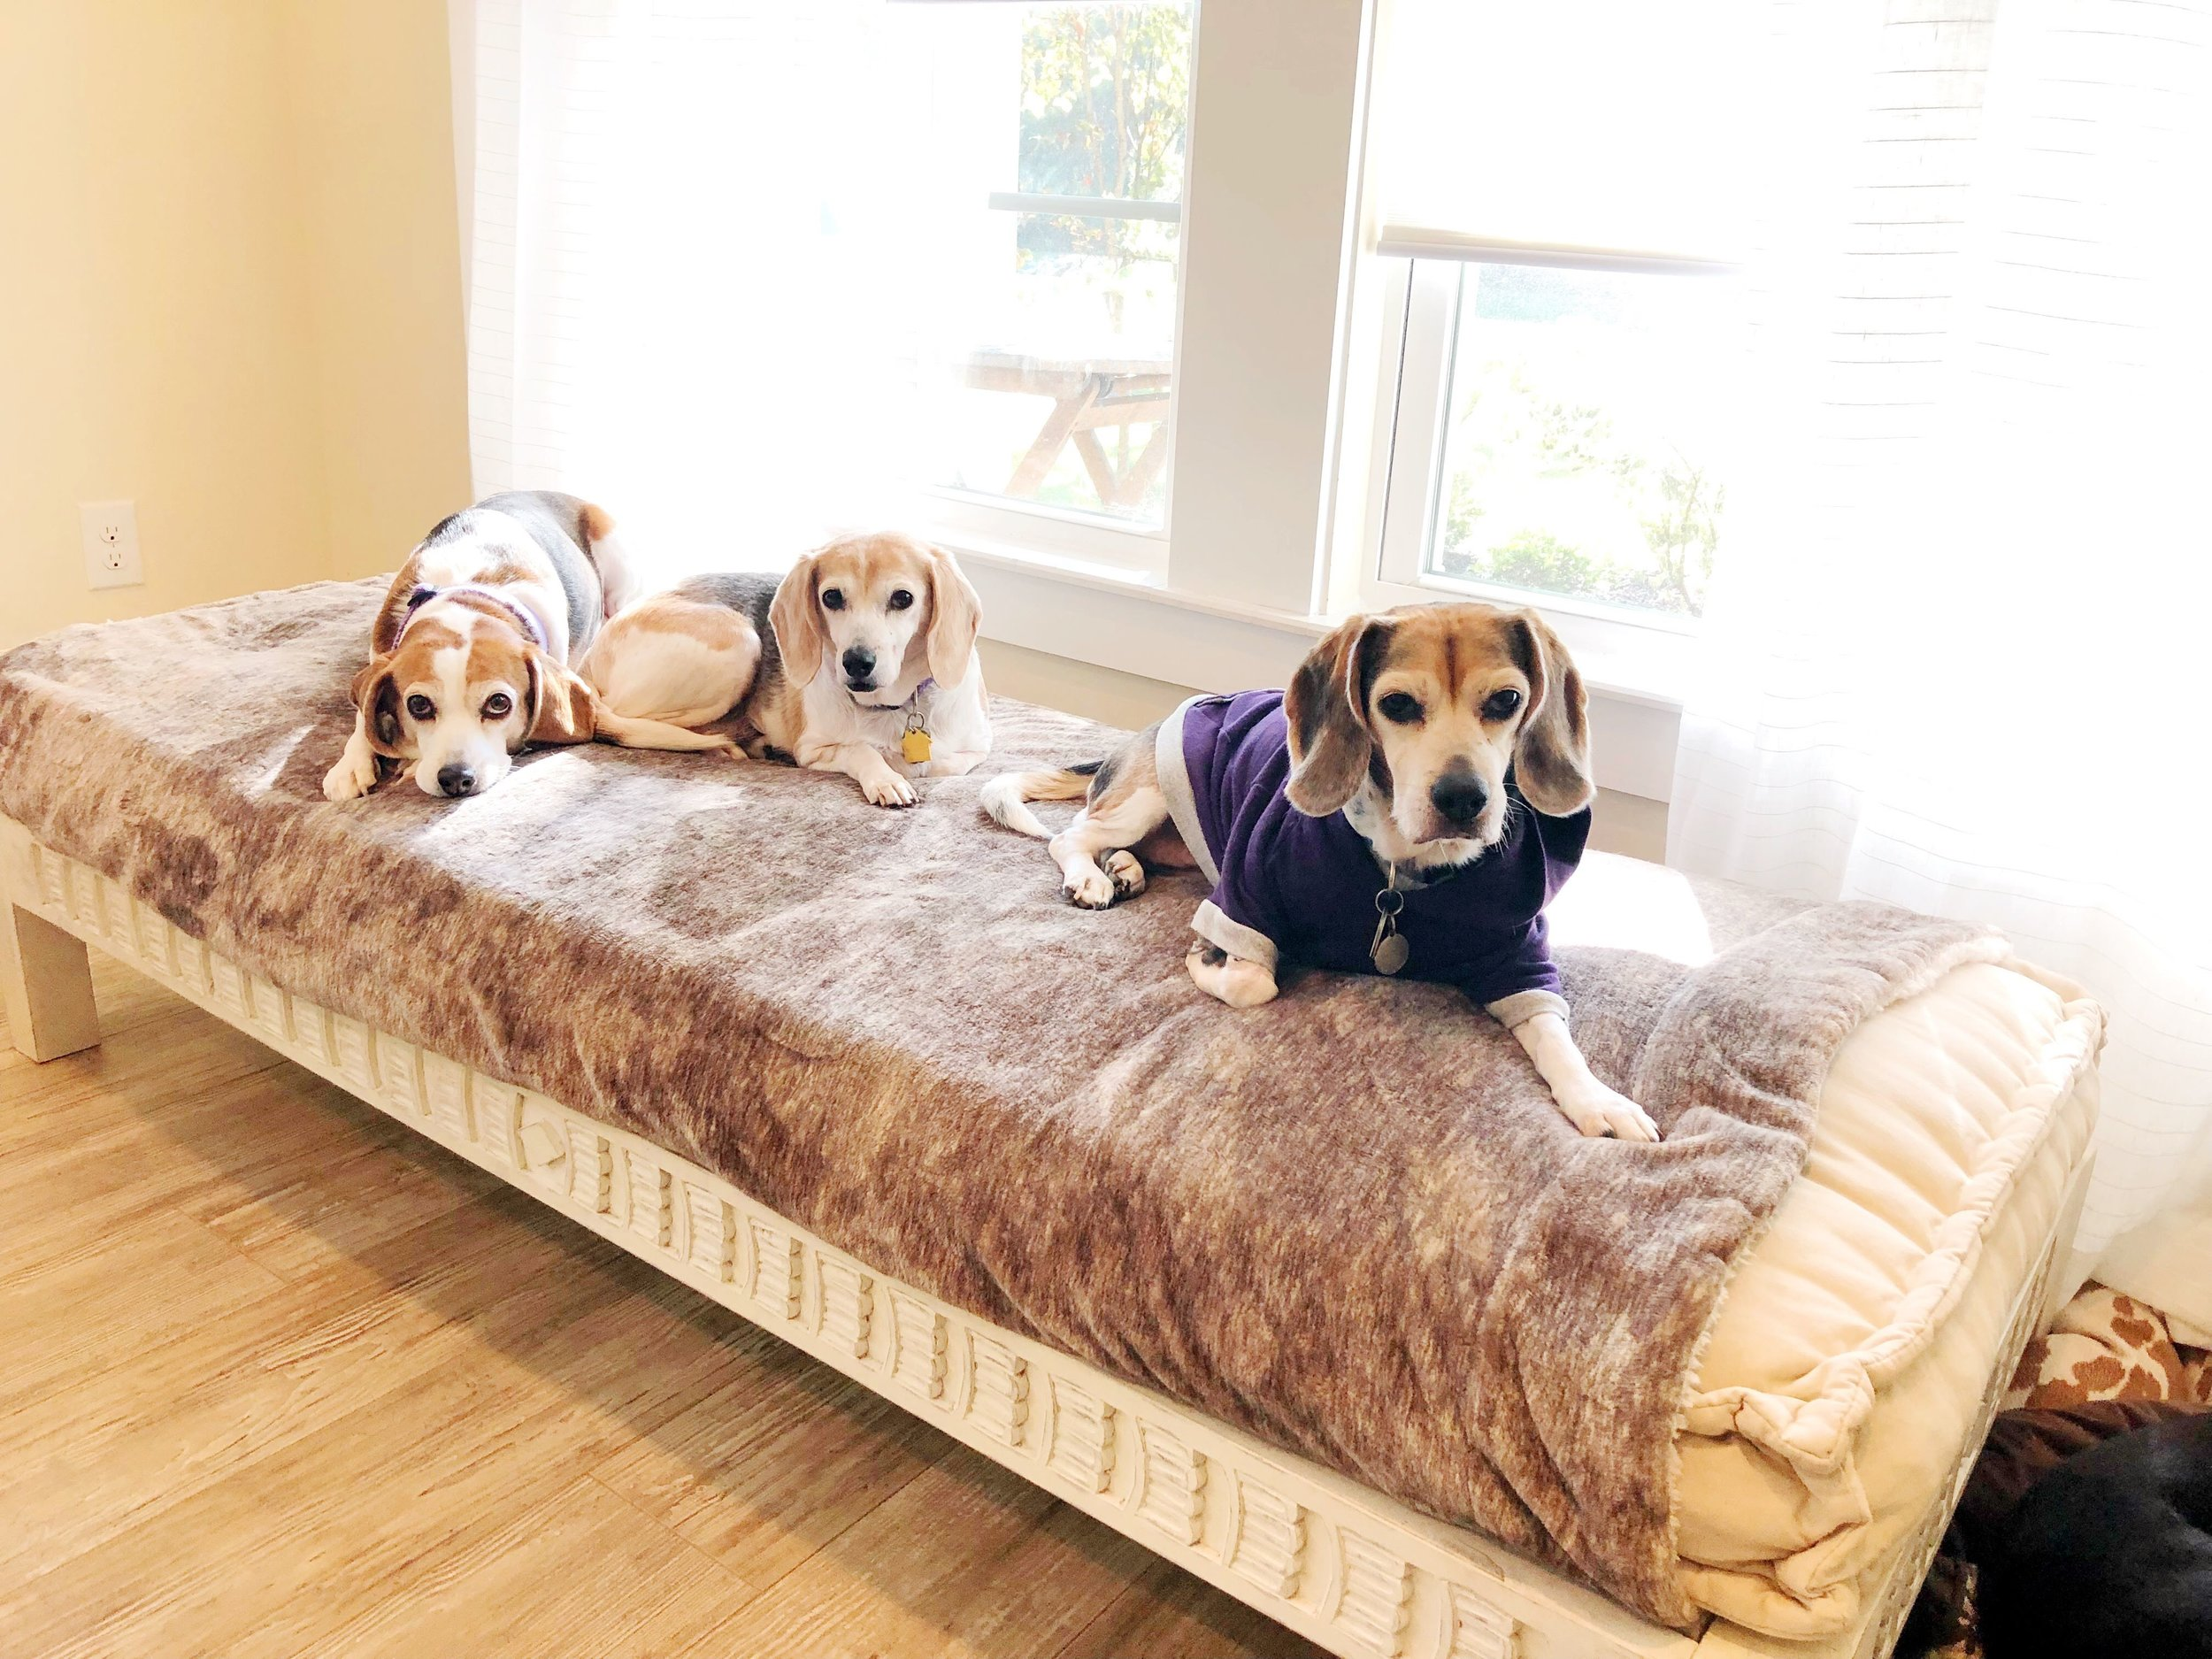 Our little beagles (front to back - Lucy Belle, Ruby Skye, Autumn)